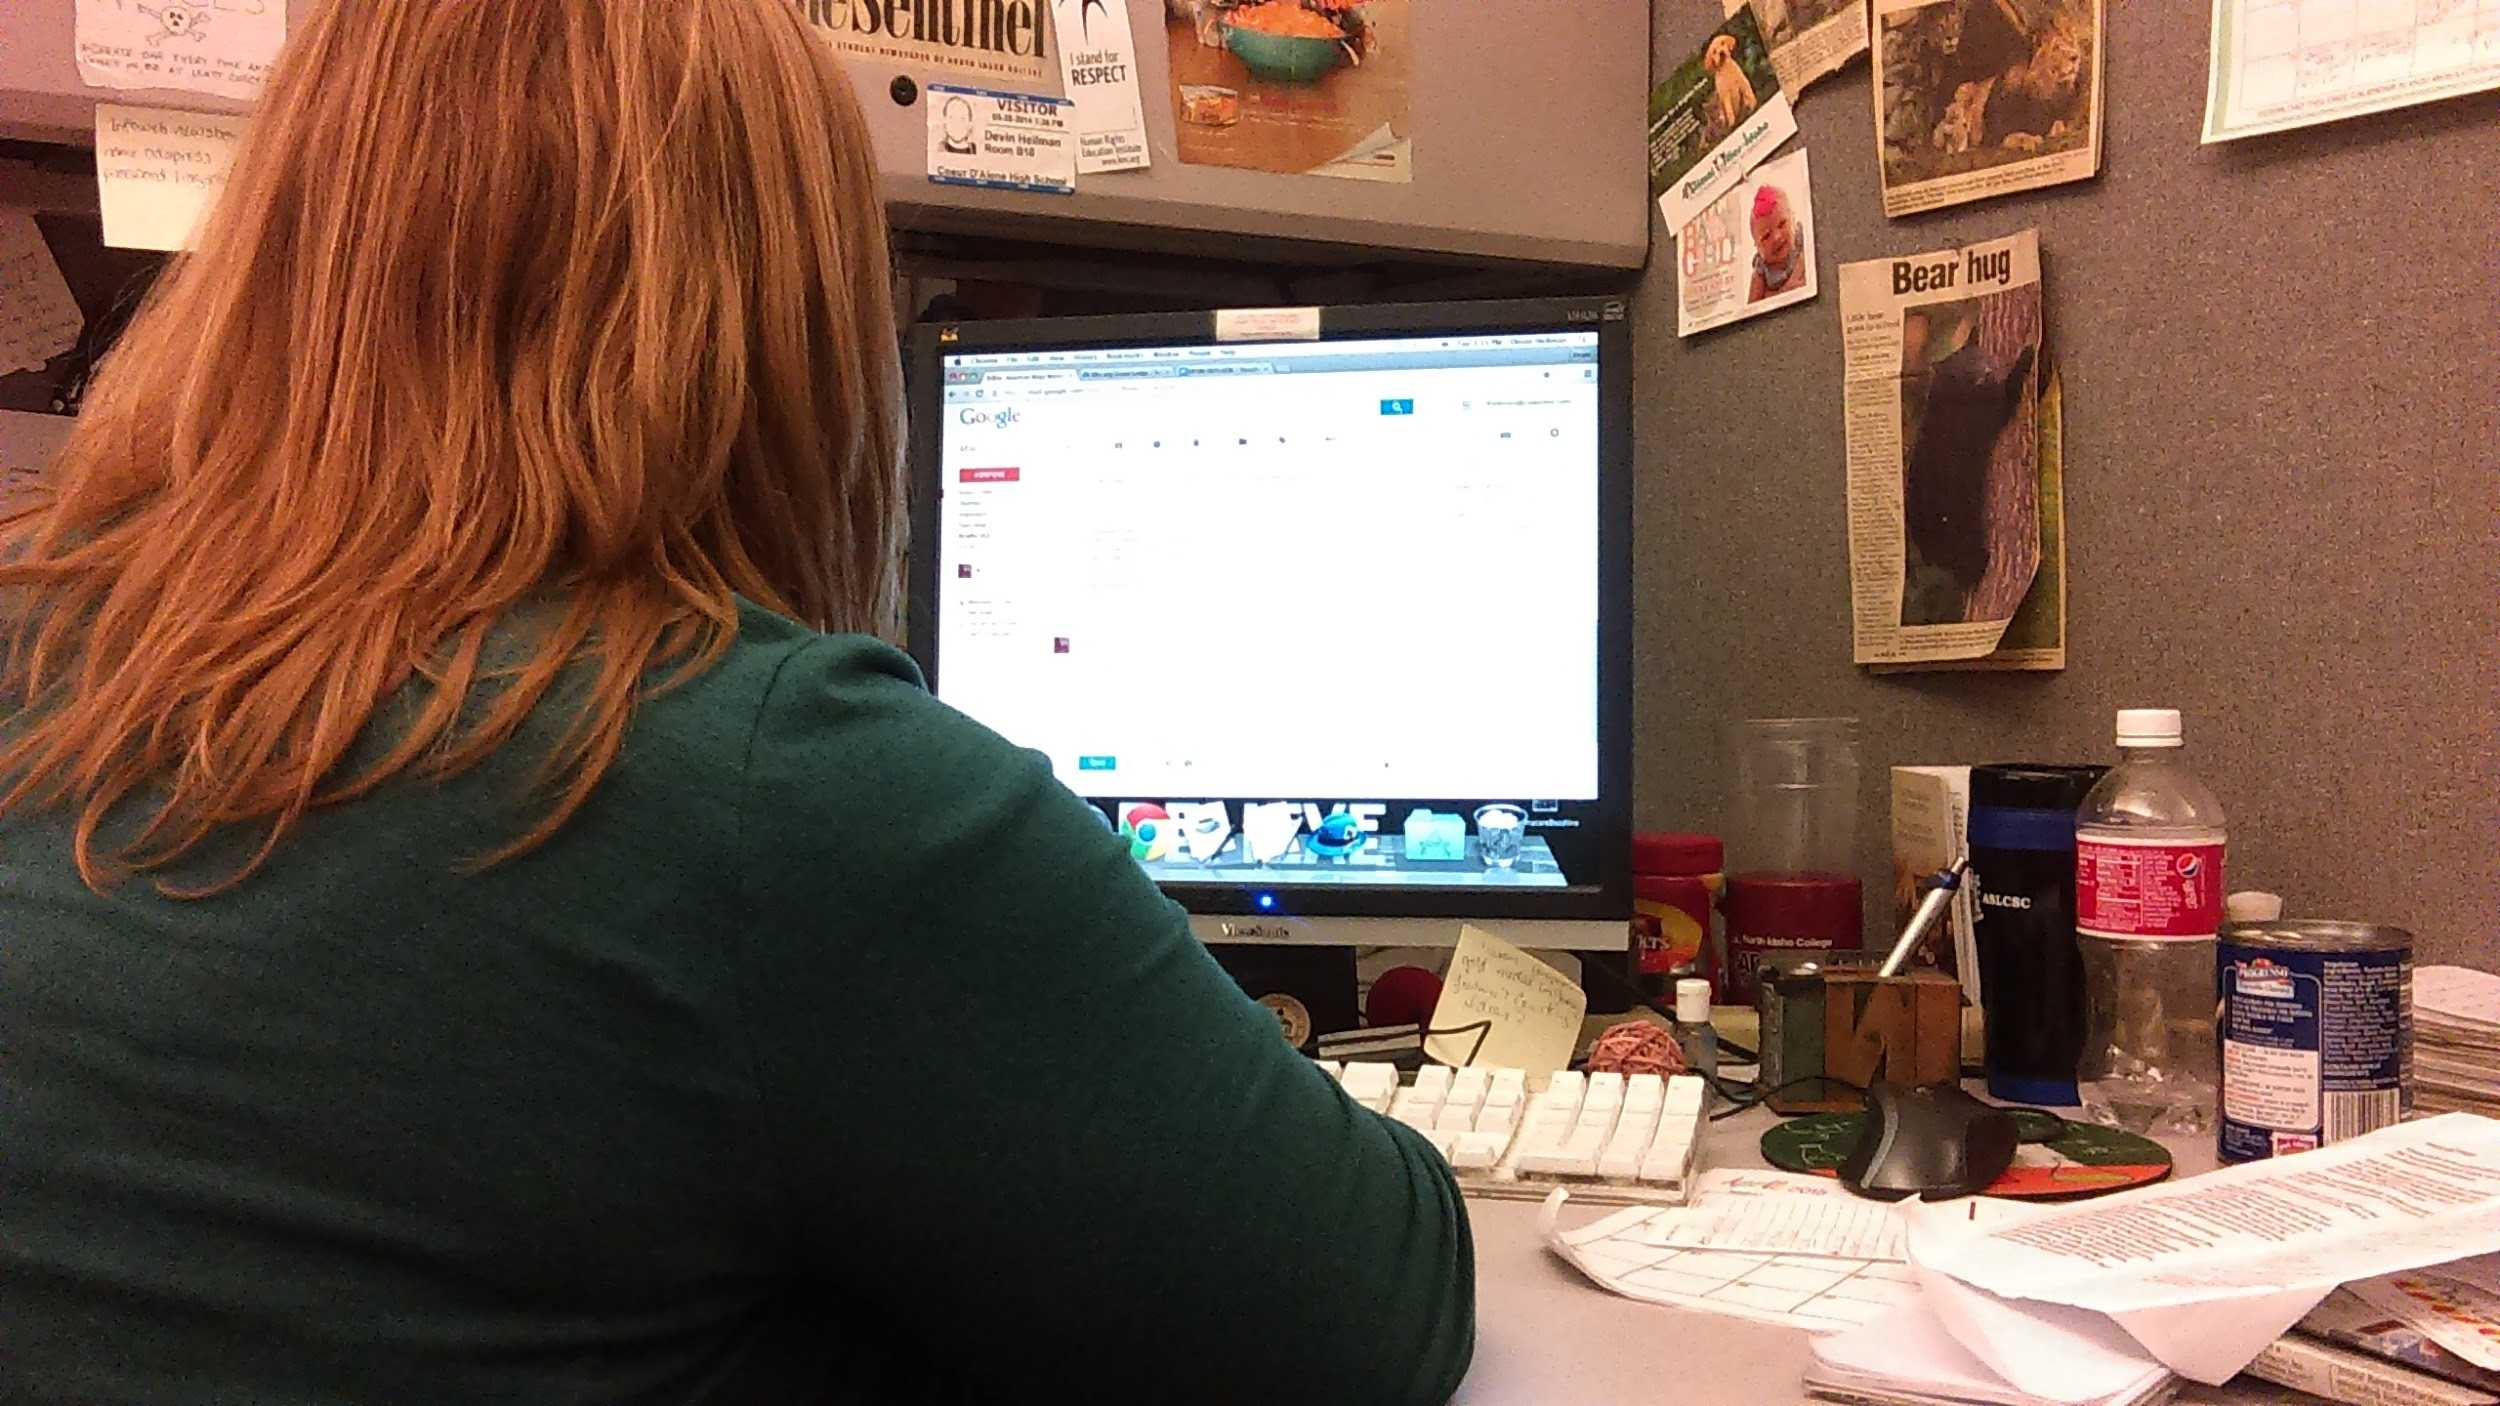 Devin working on her assignments.